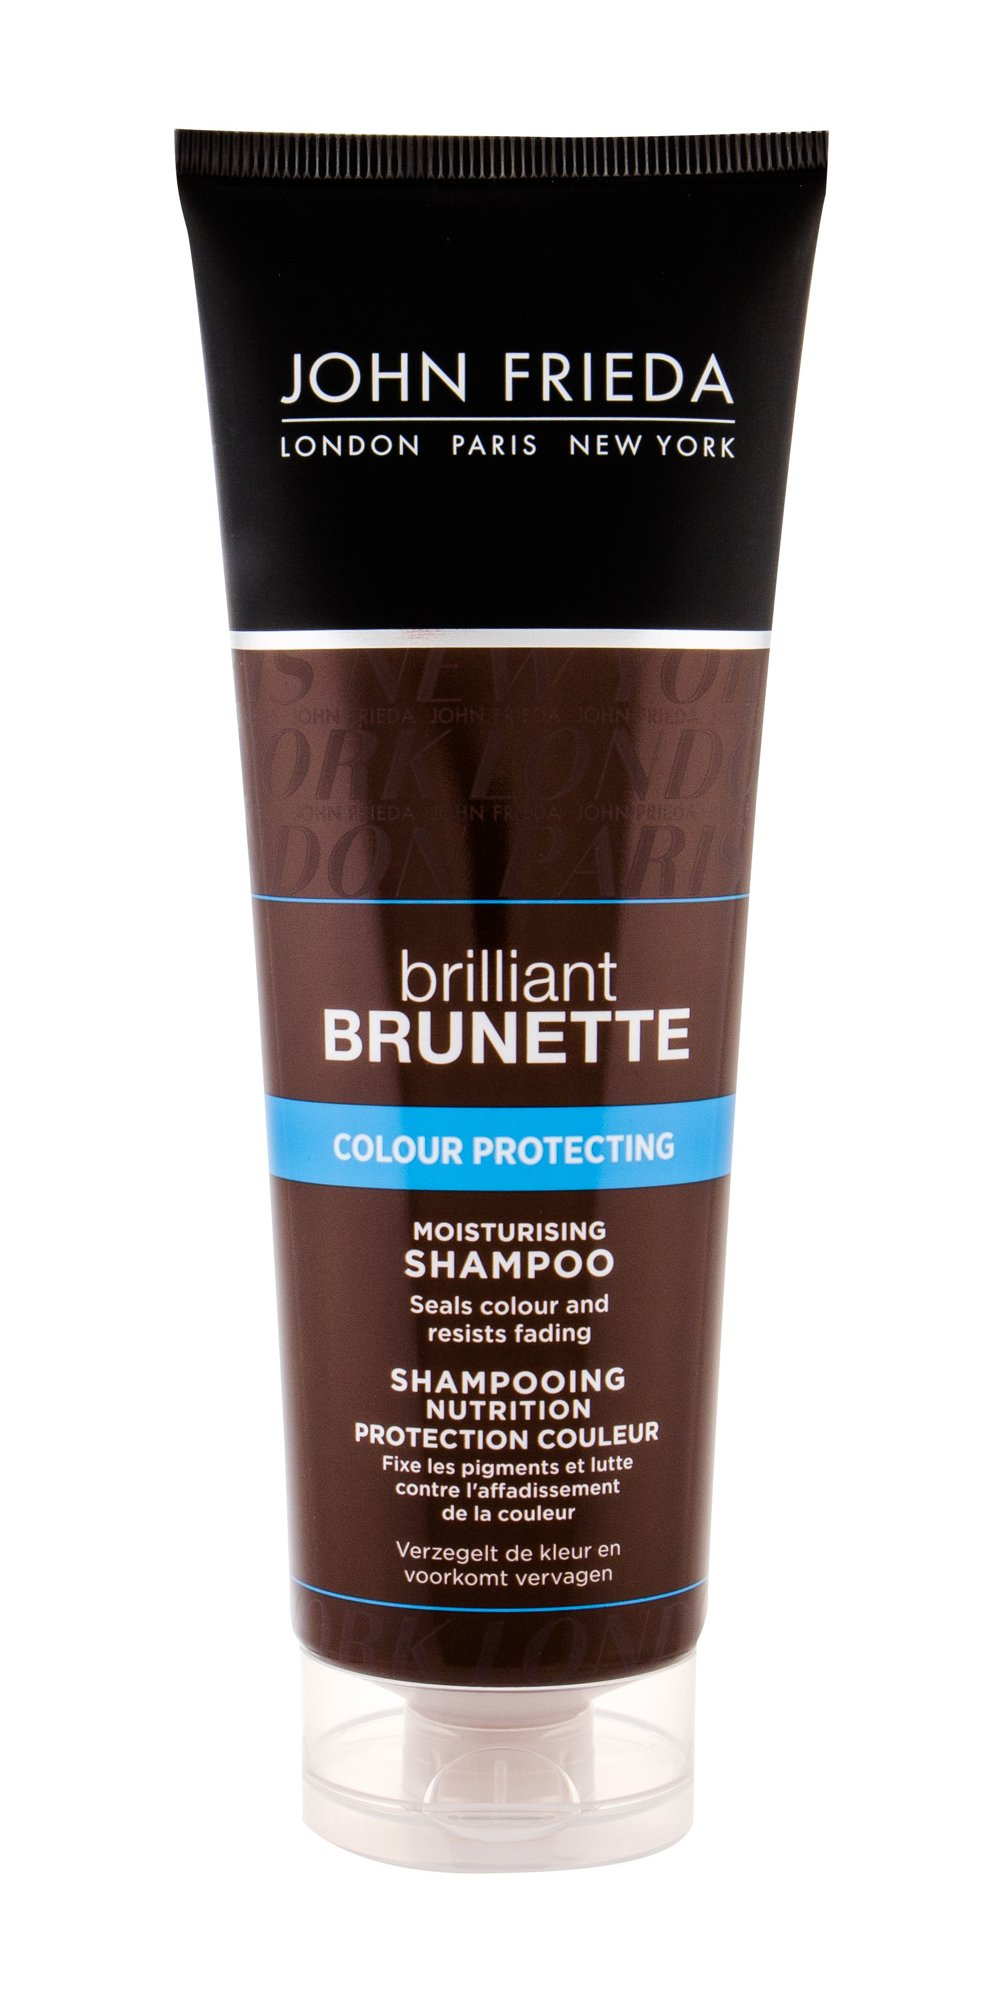 John Frieda Brilliant Brunette Shampoo 250ml  Colour Protecting